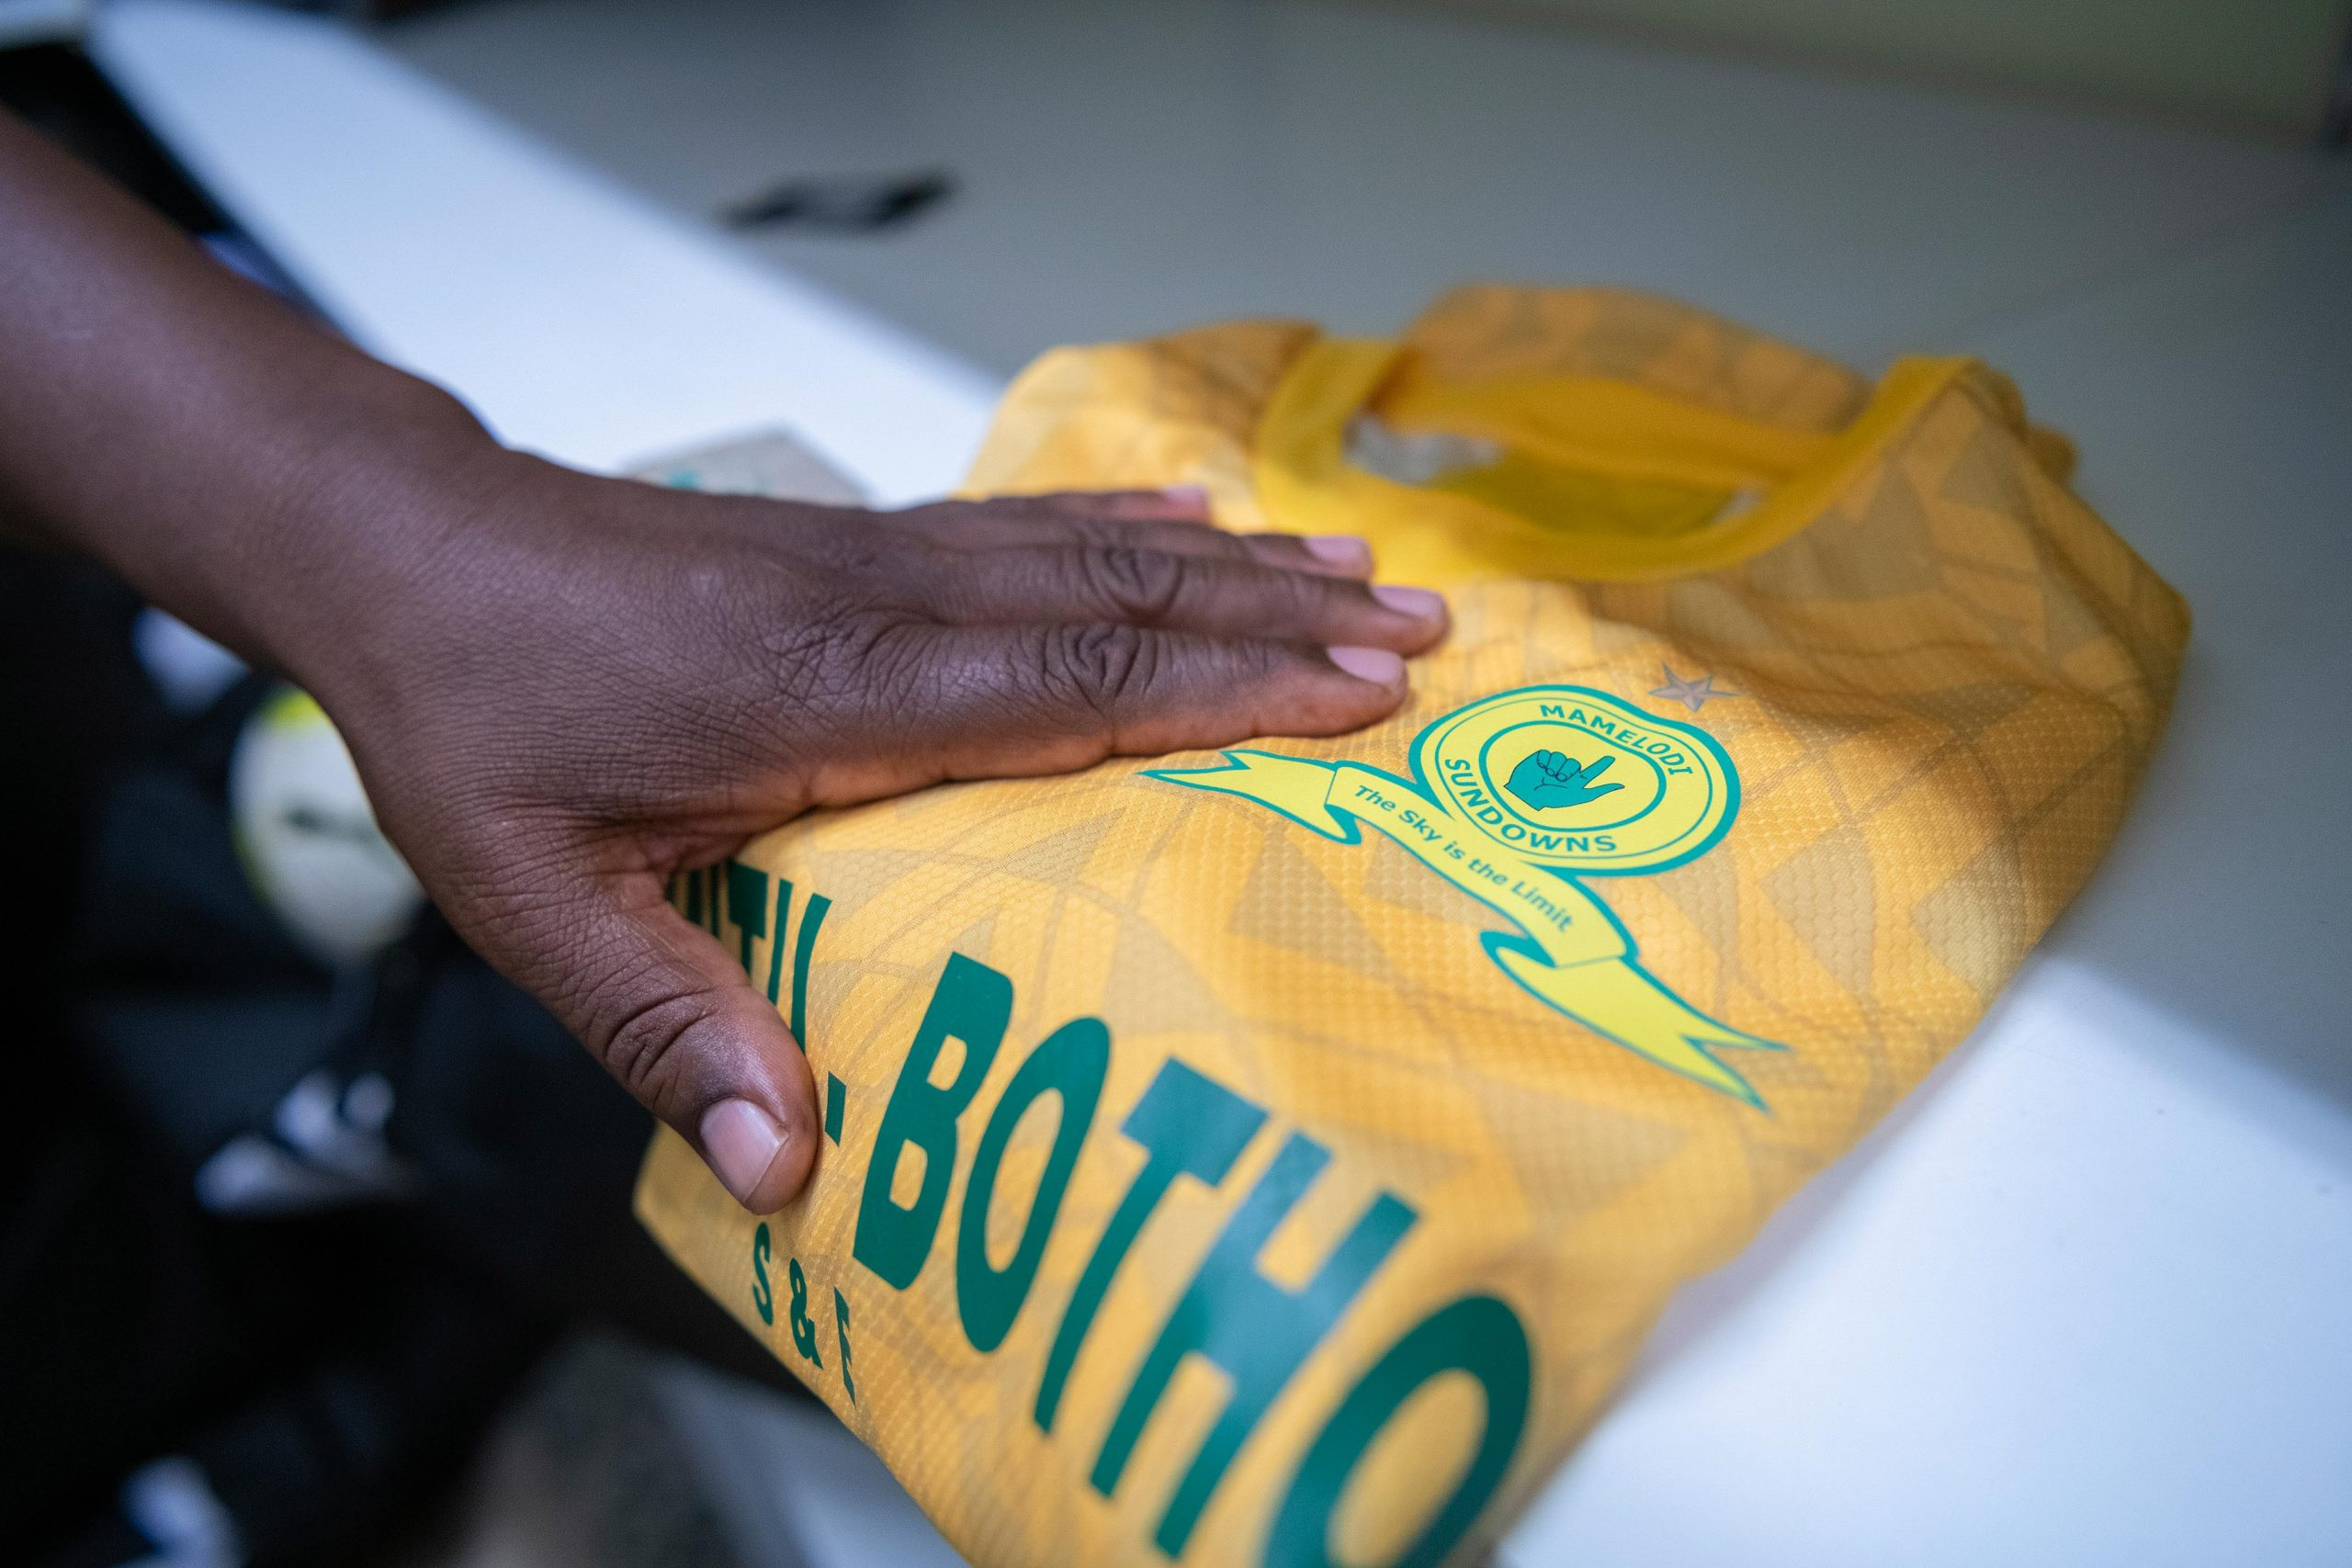 20 February 2020: Sundowns' famous canary yellow and blue strip.